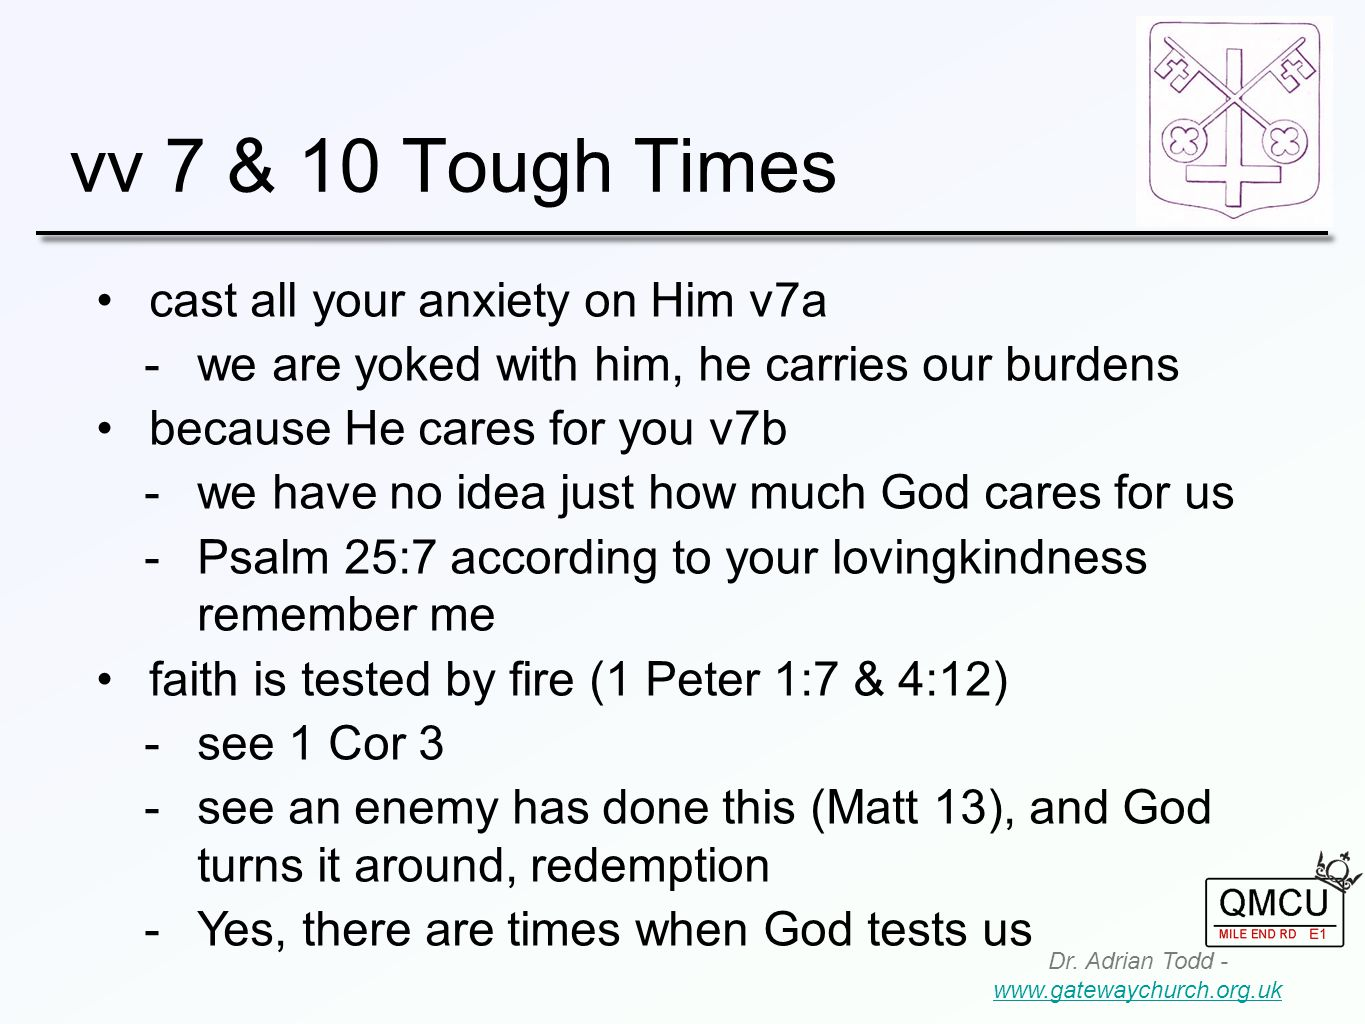 vv 7 & 10 Tough Times Dr. Adrian Todd - www.gatewaychurch.org.uk www.gatewaychurch.org.uk cast all your anxiety on Him v7a  we are yoked with him, he